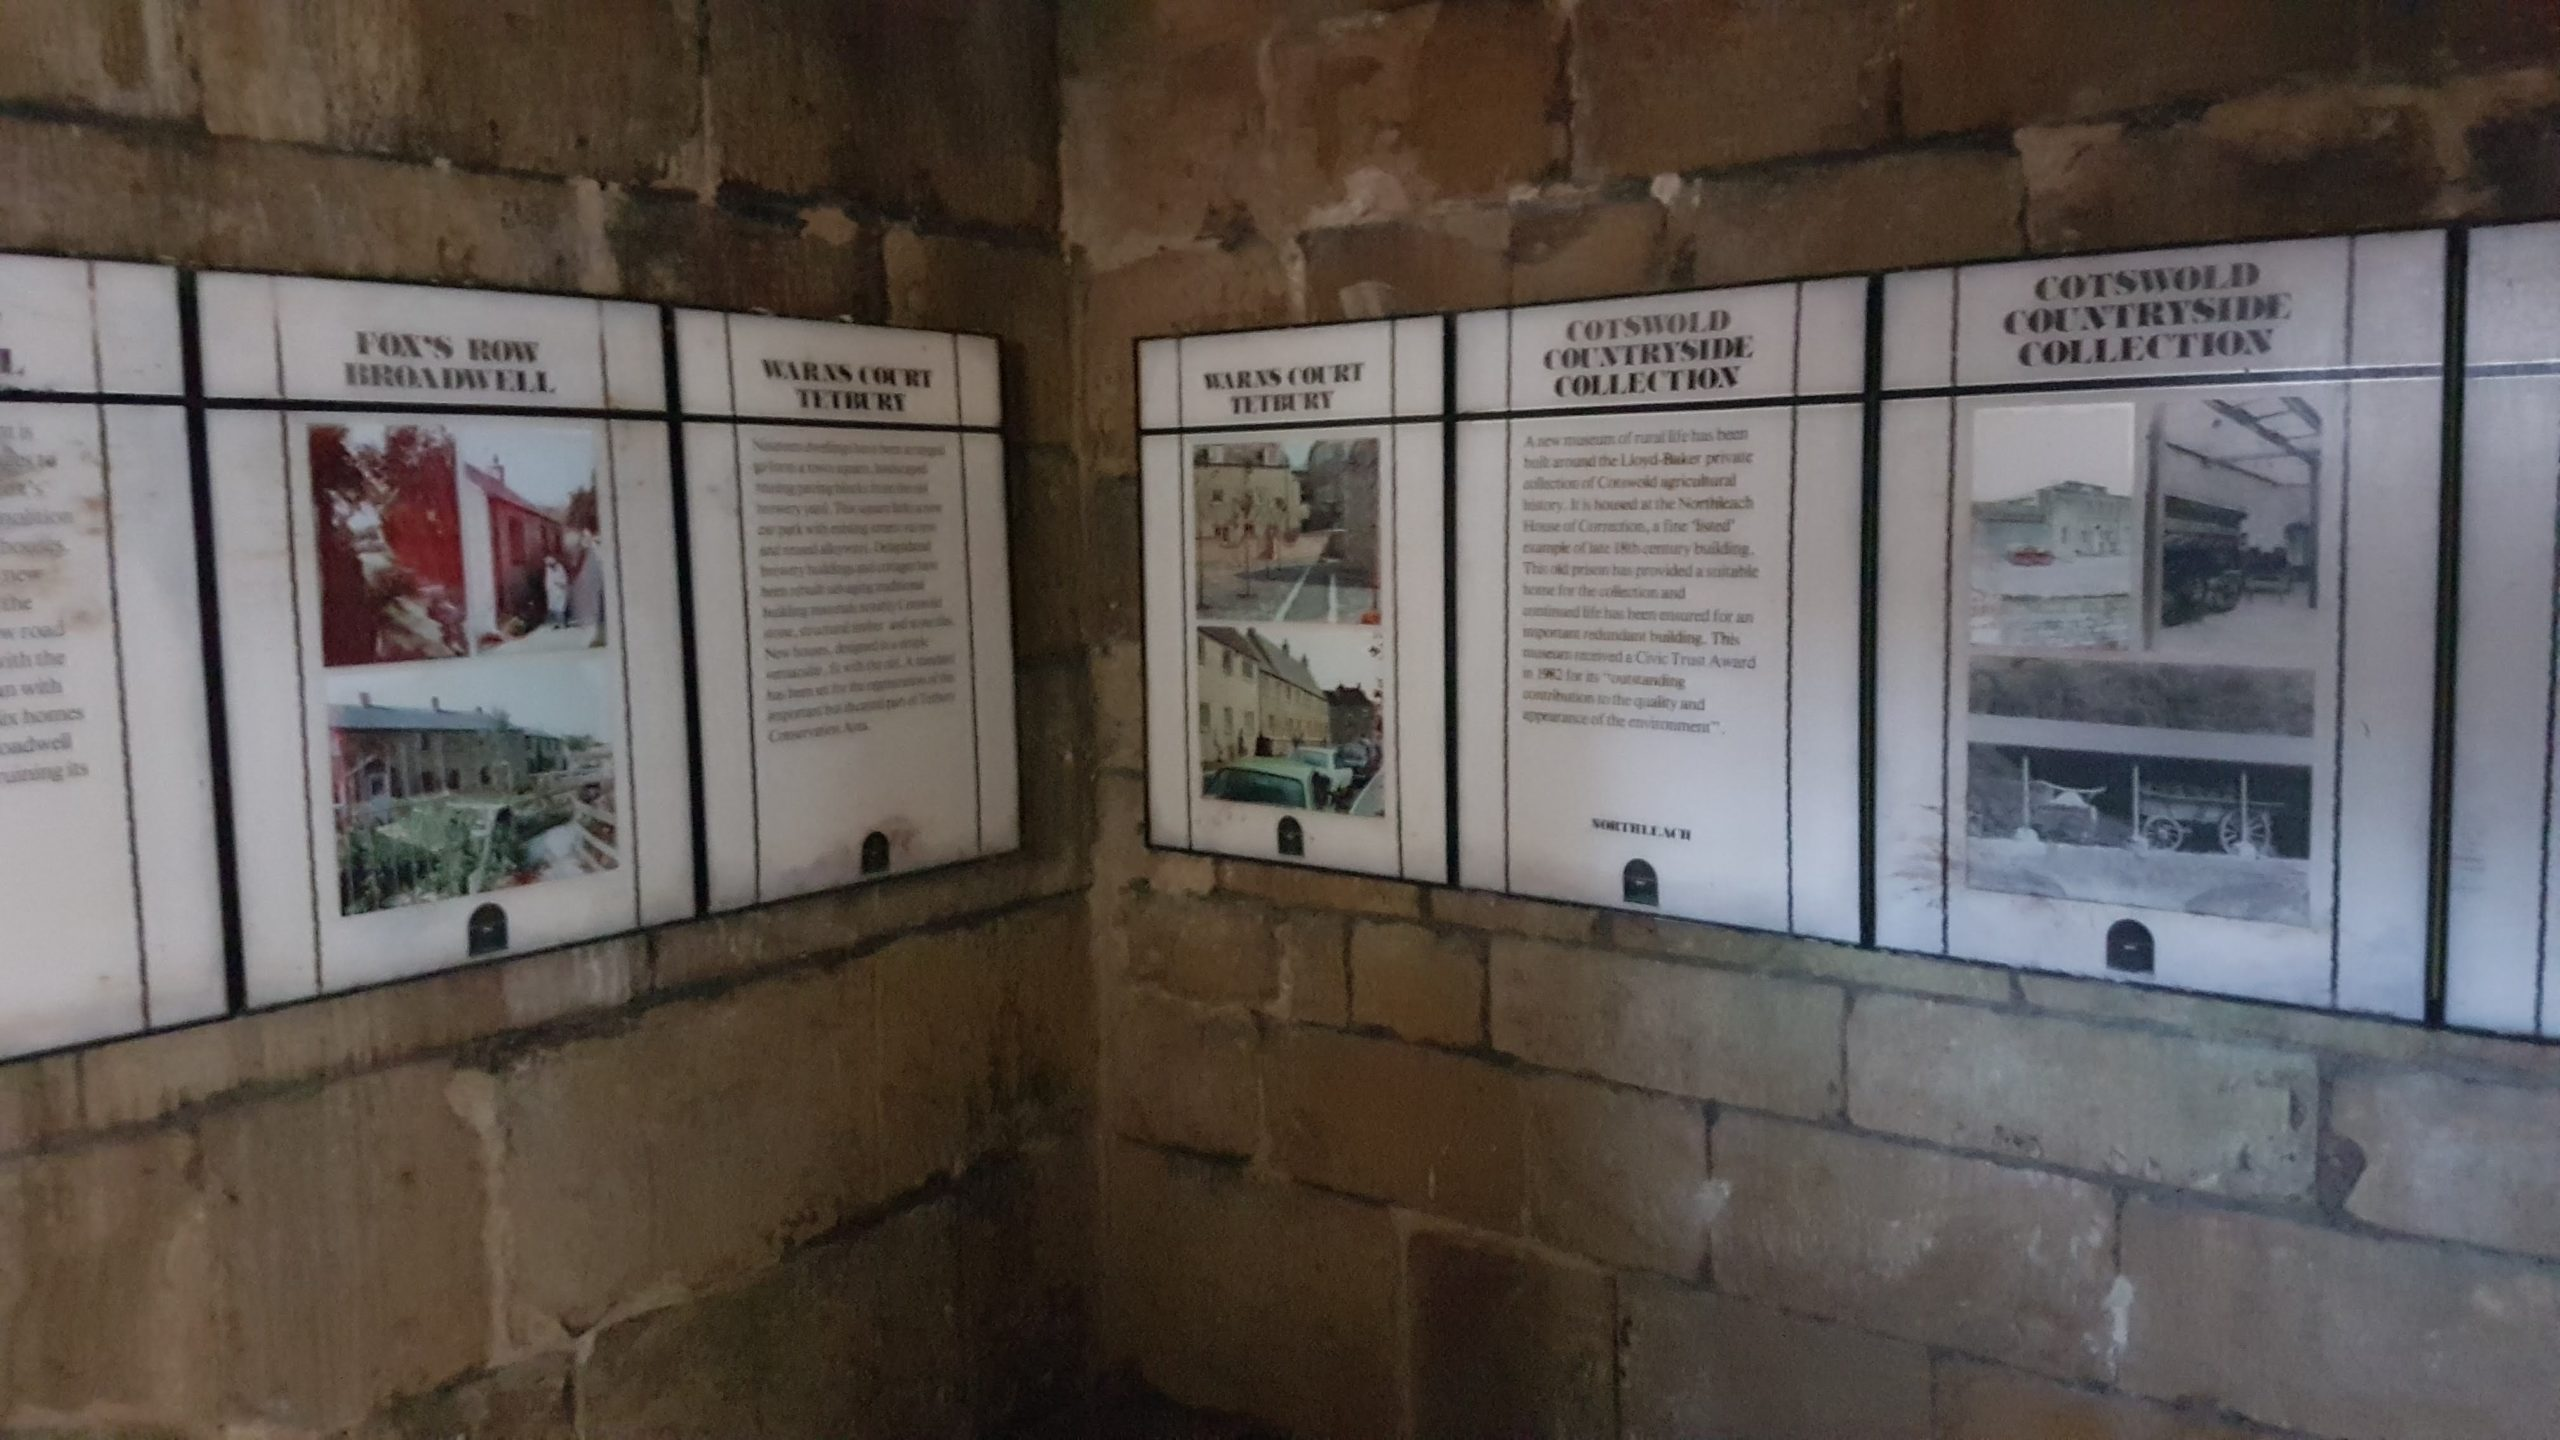 Interpretative panels on the walls of the cells.